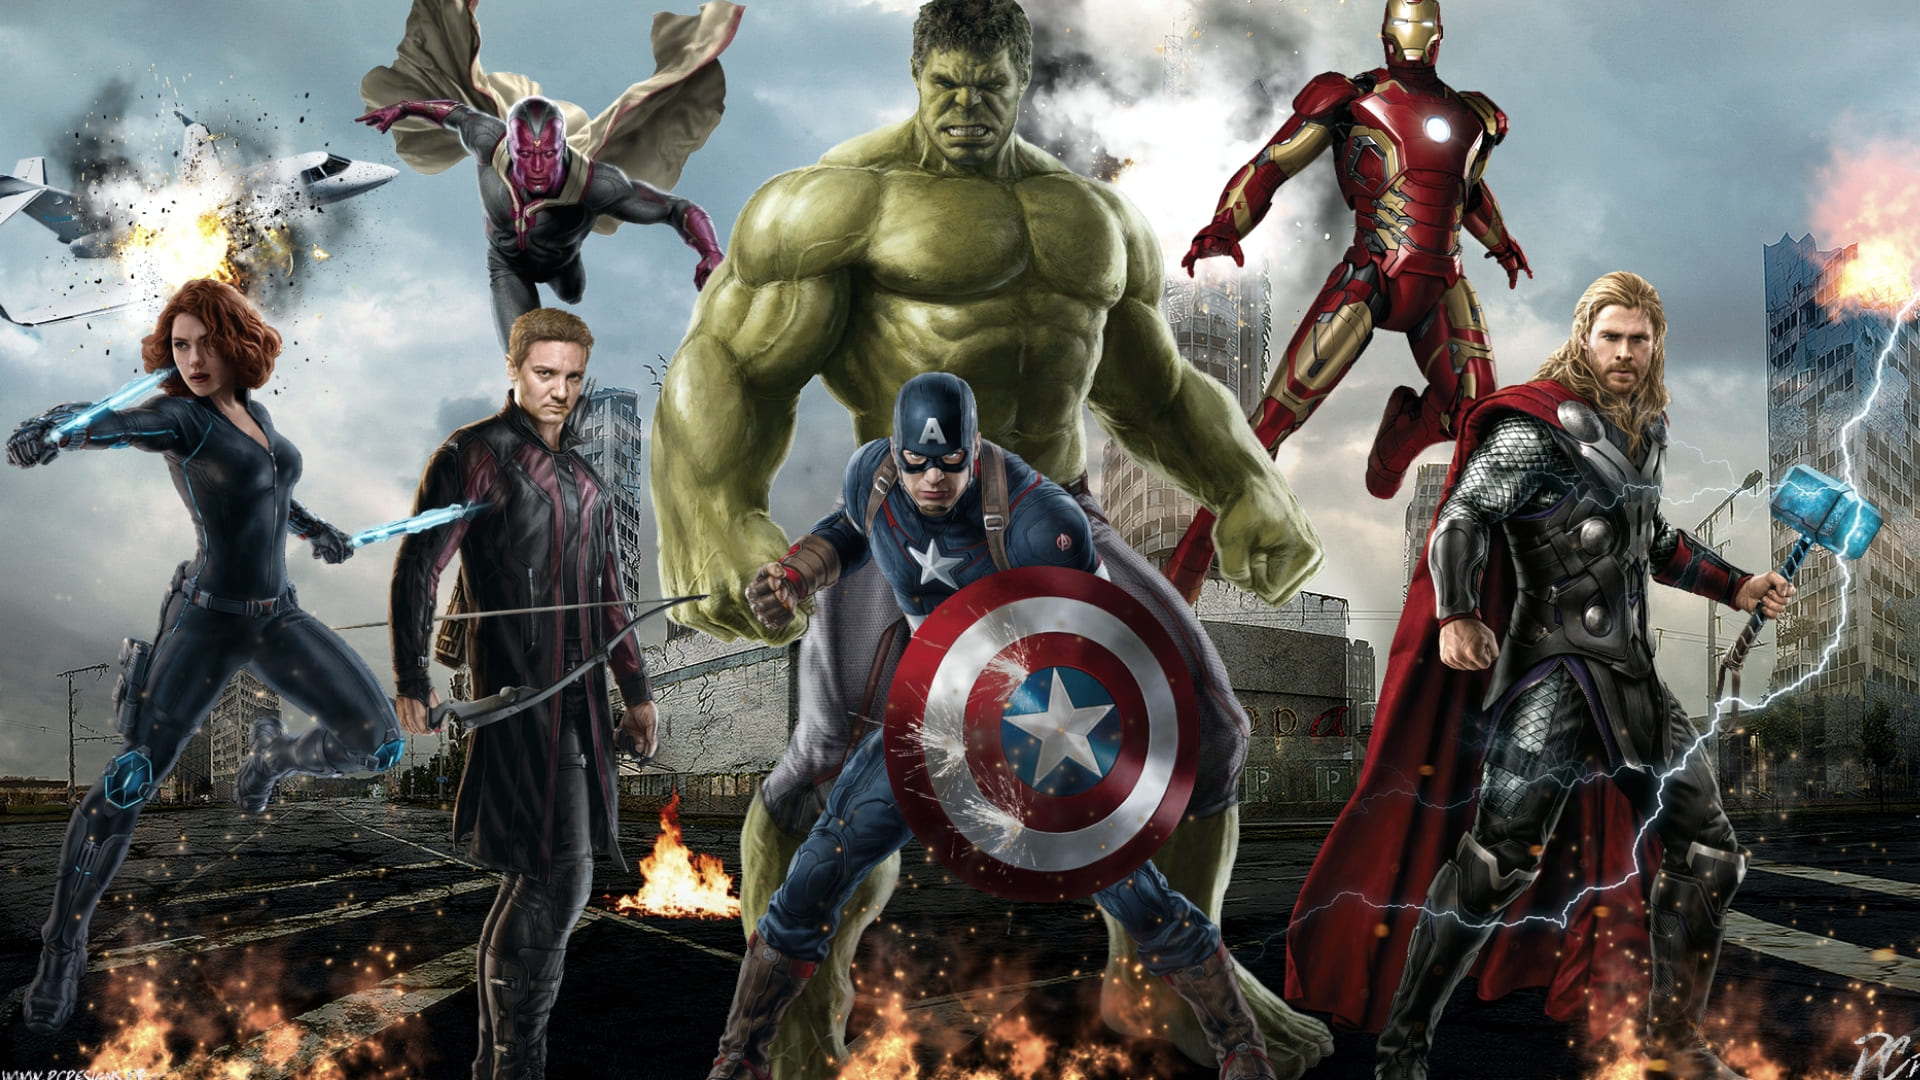 Avengers hd wallpapers for laptop